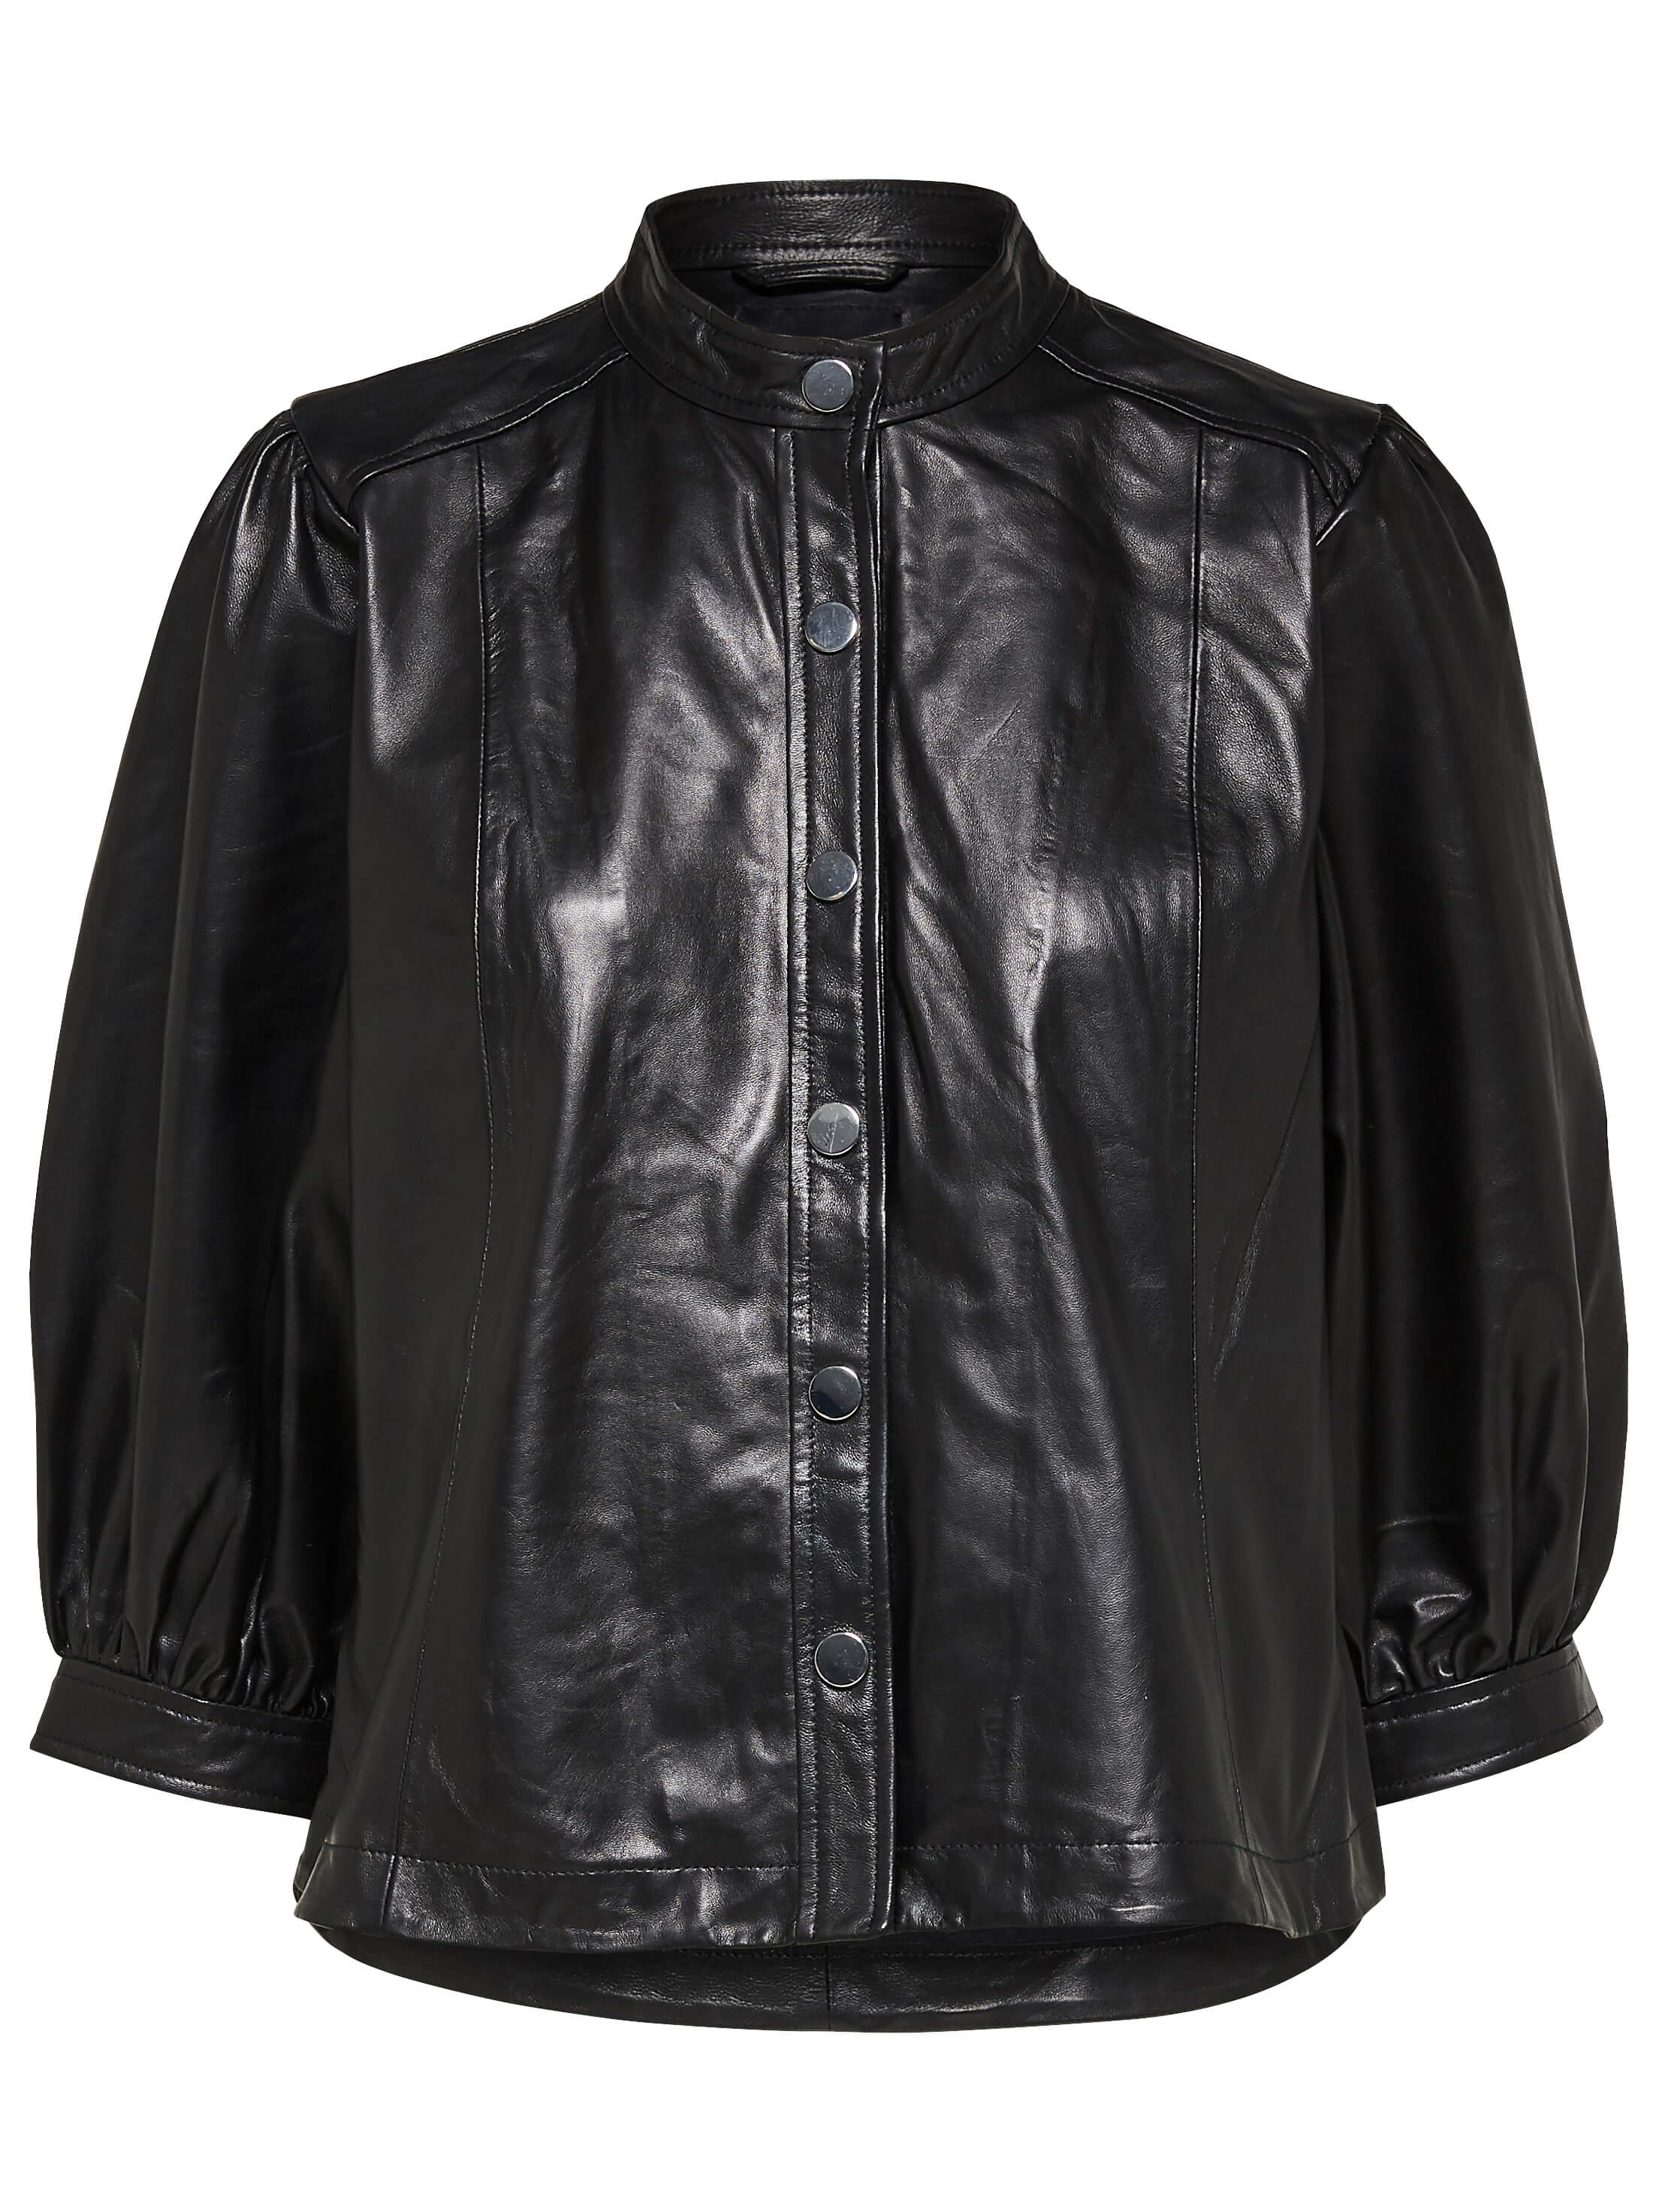 SLF Milla leather shirt in black